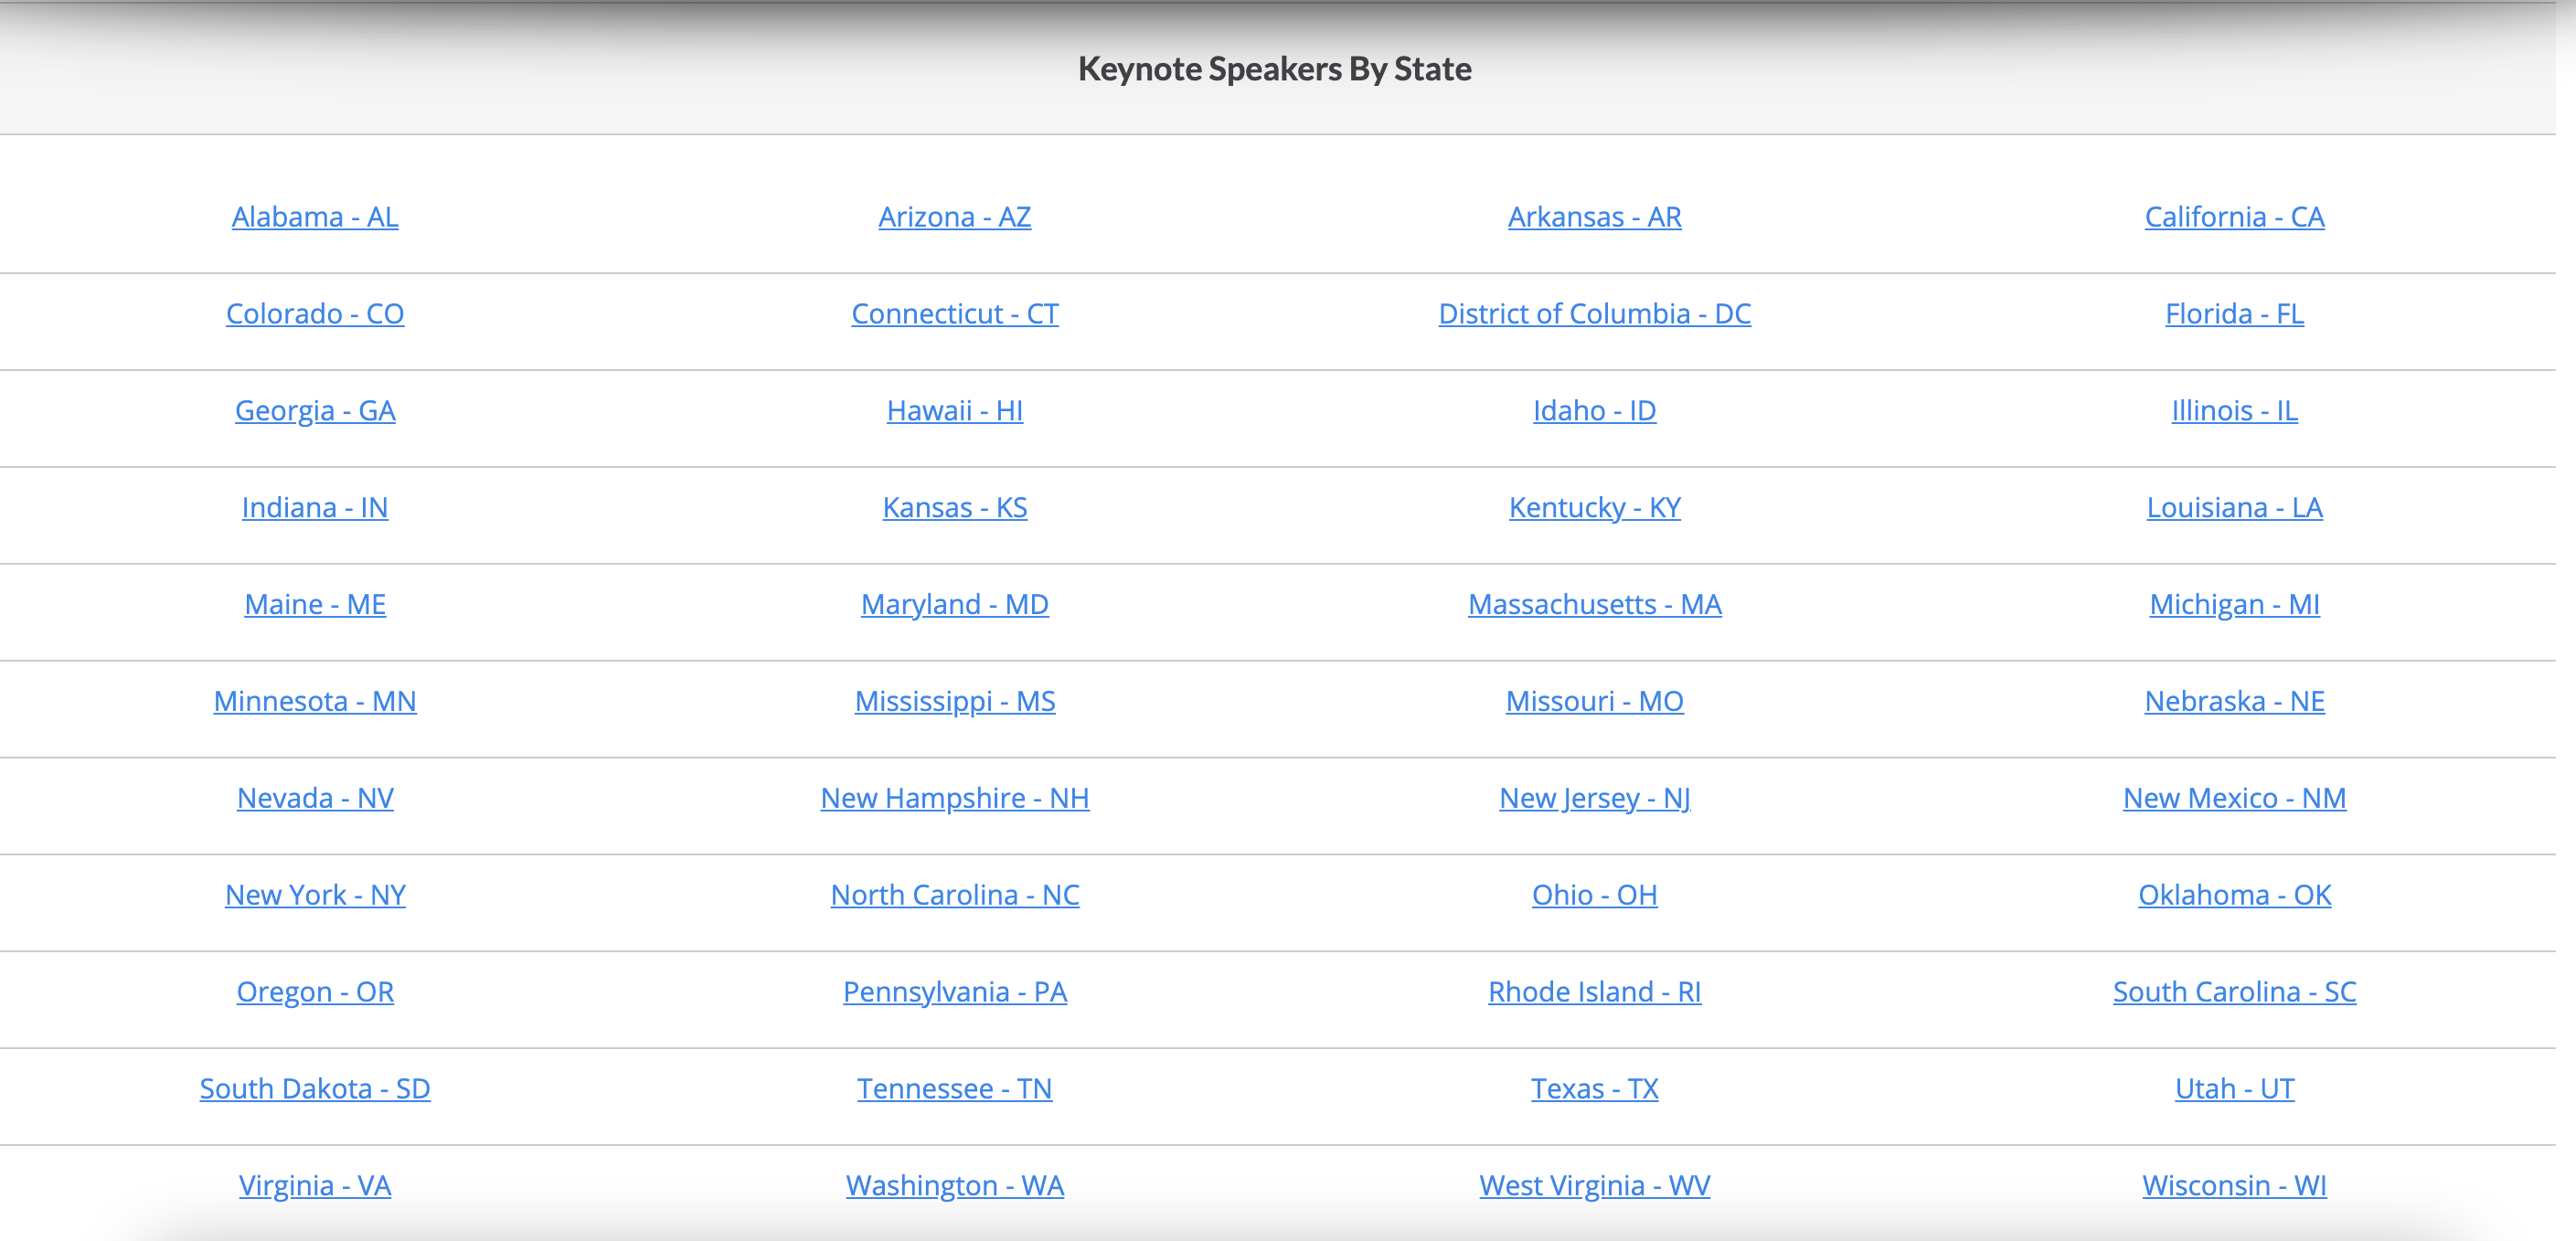 Local Keynote Speakers by State